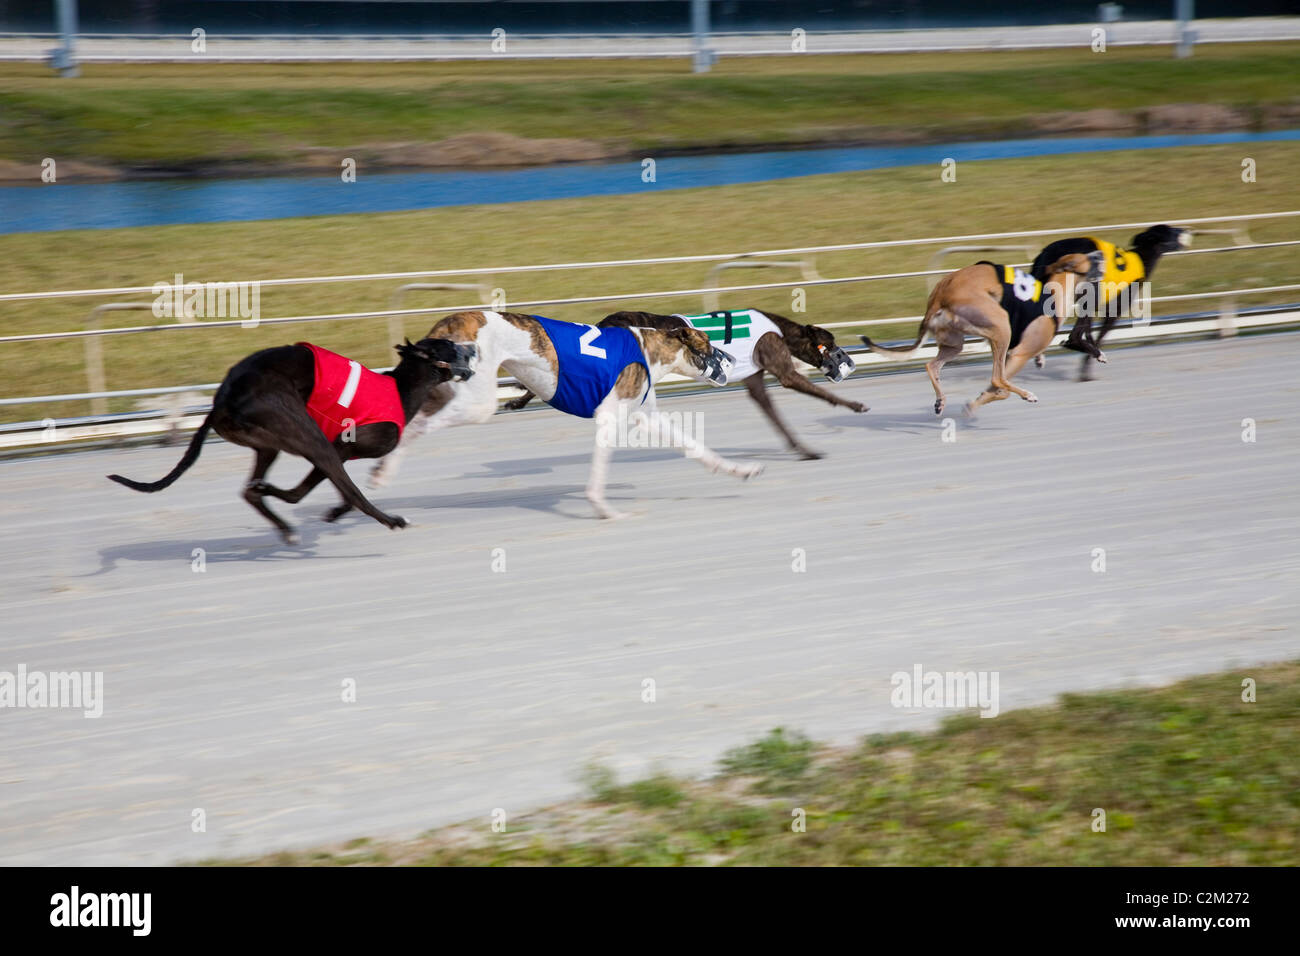 Daytona Beach Kennel Club offers greyhound racing action and